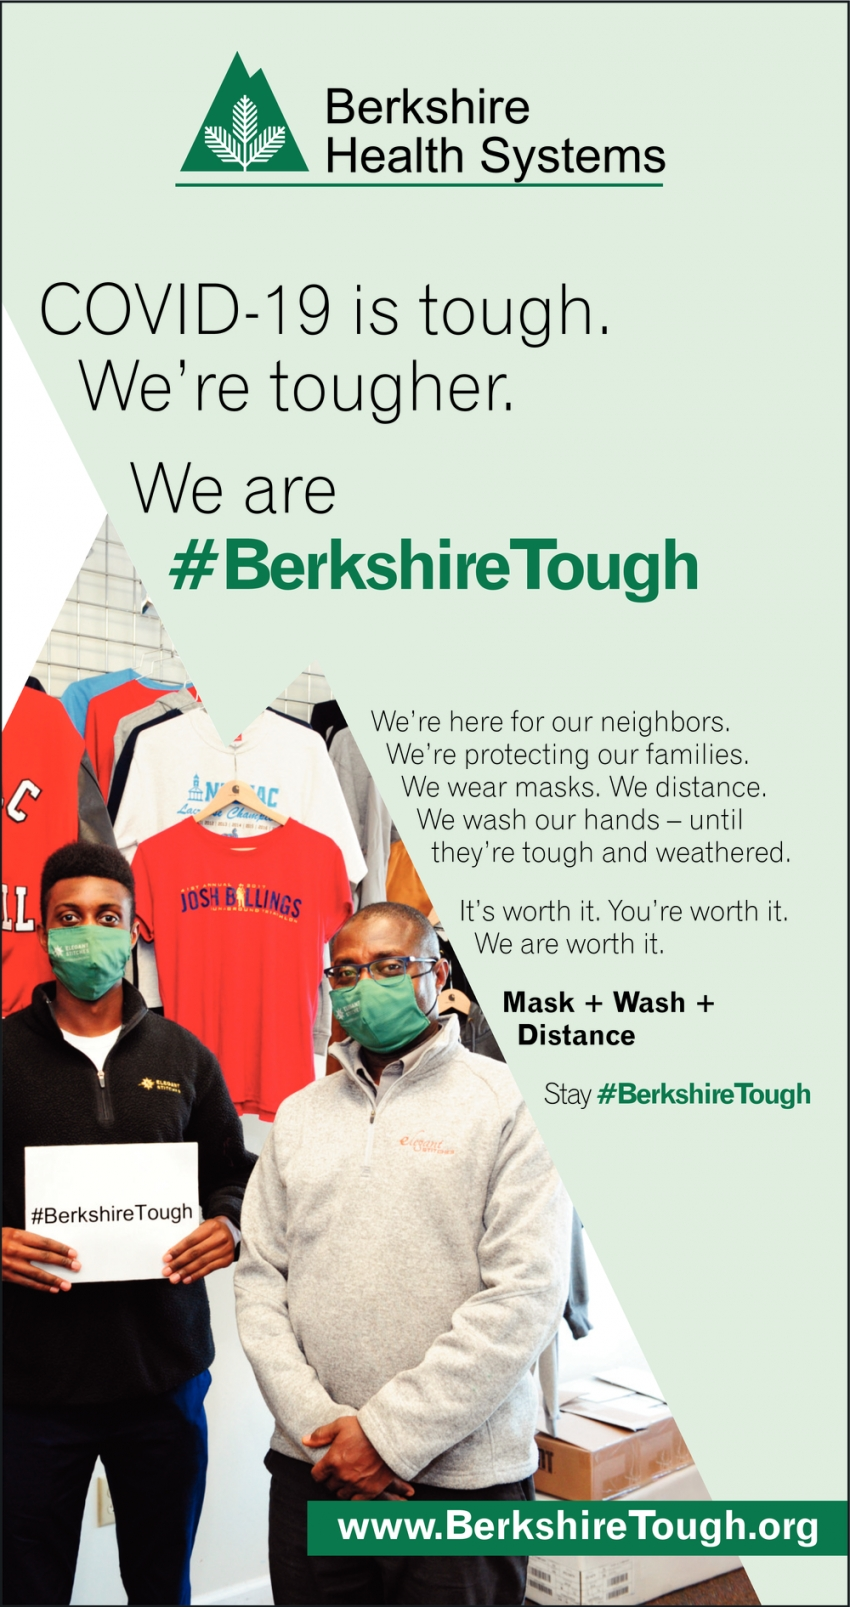 #BerkshireTough